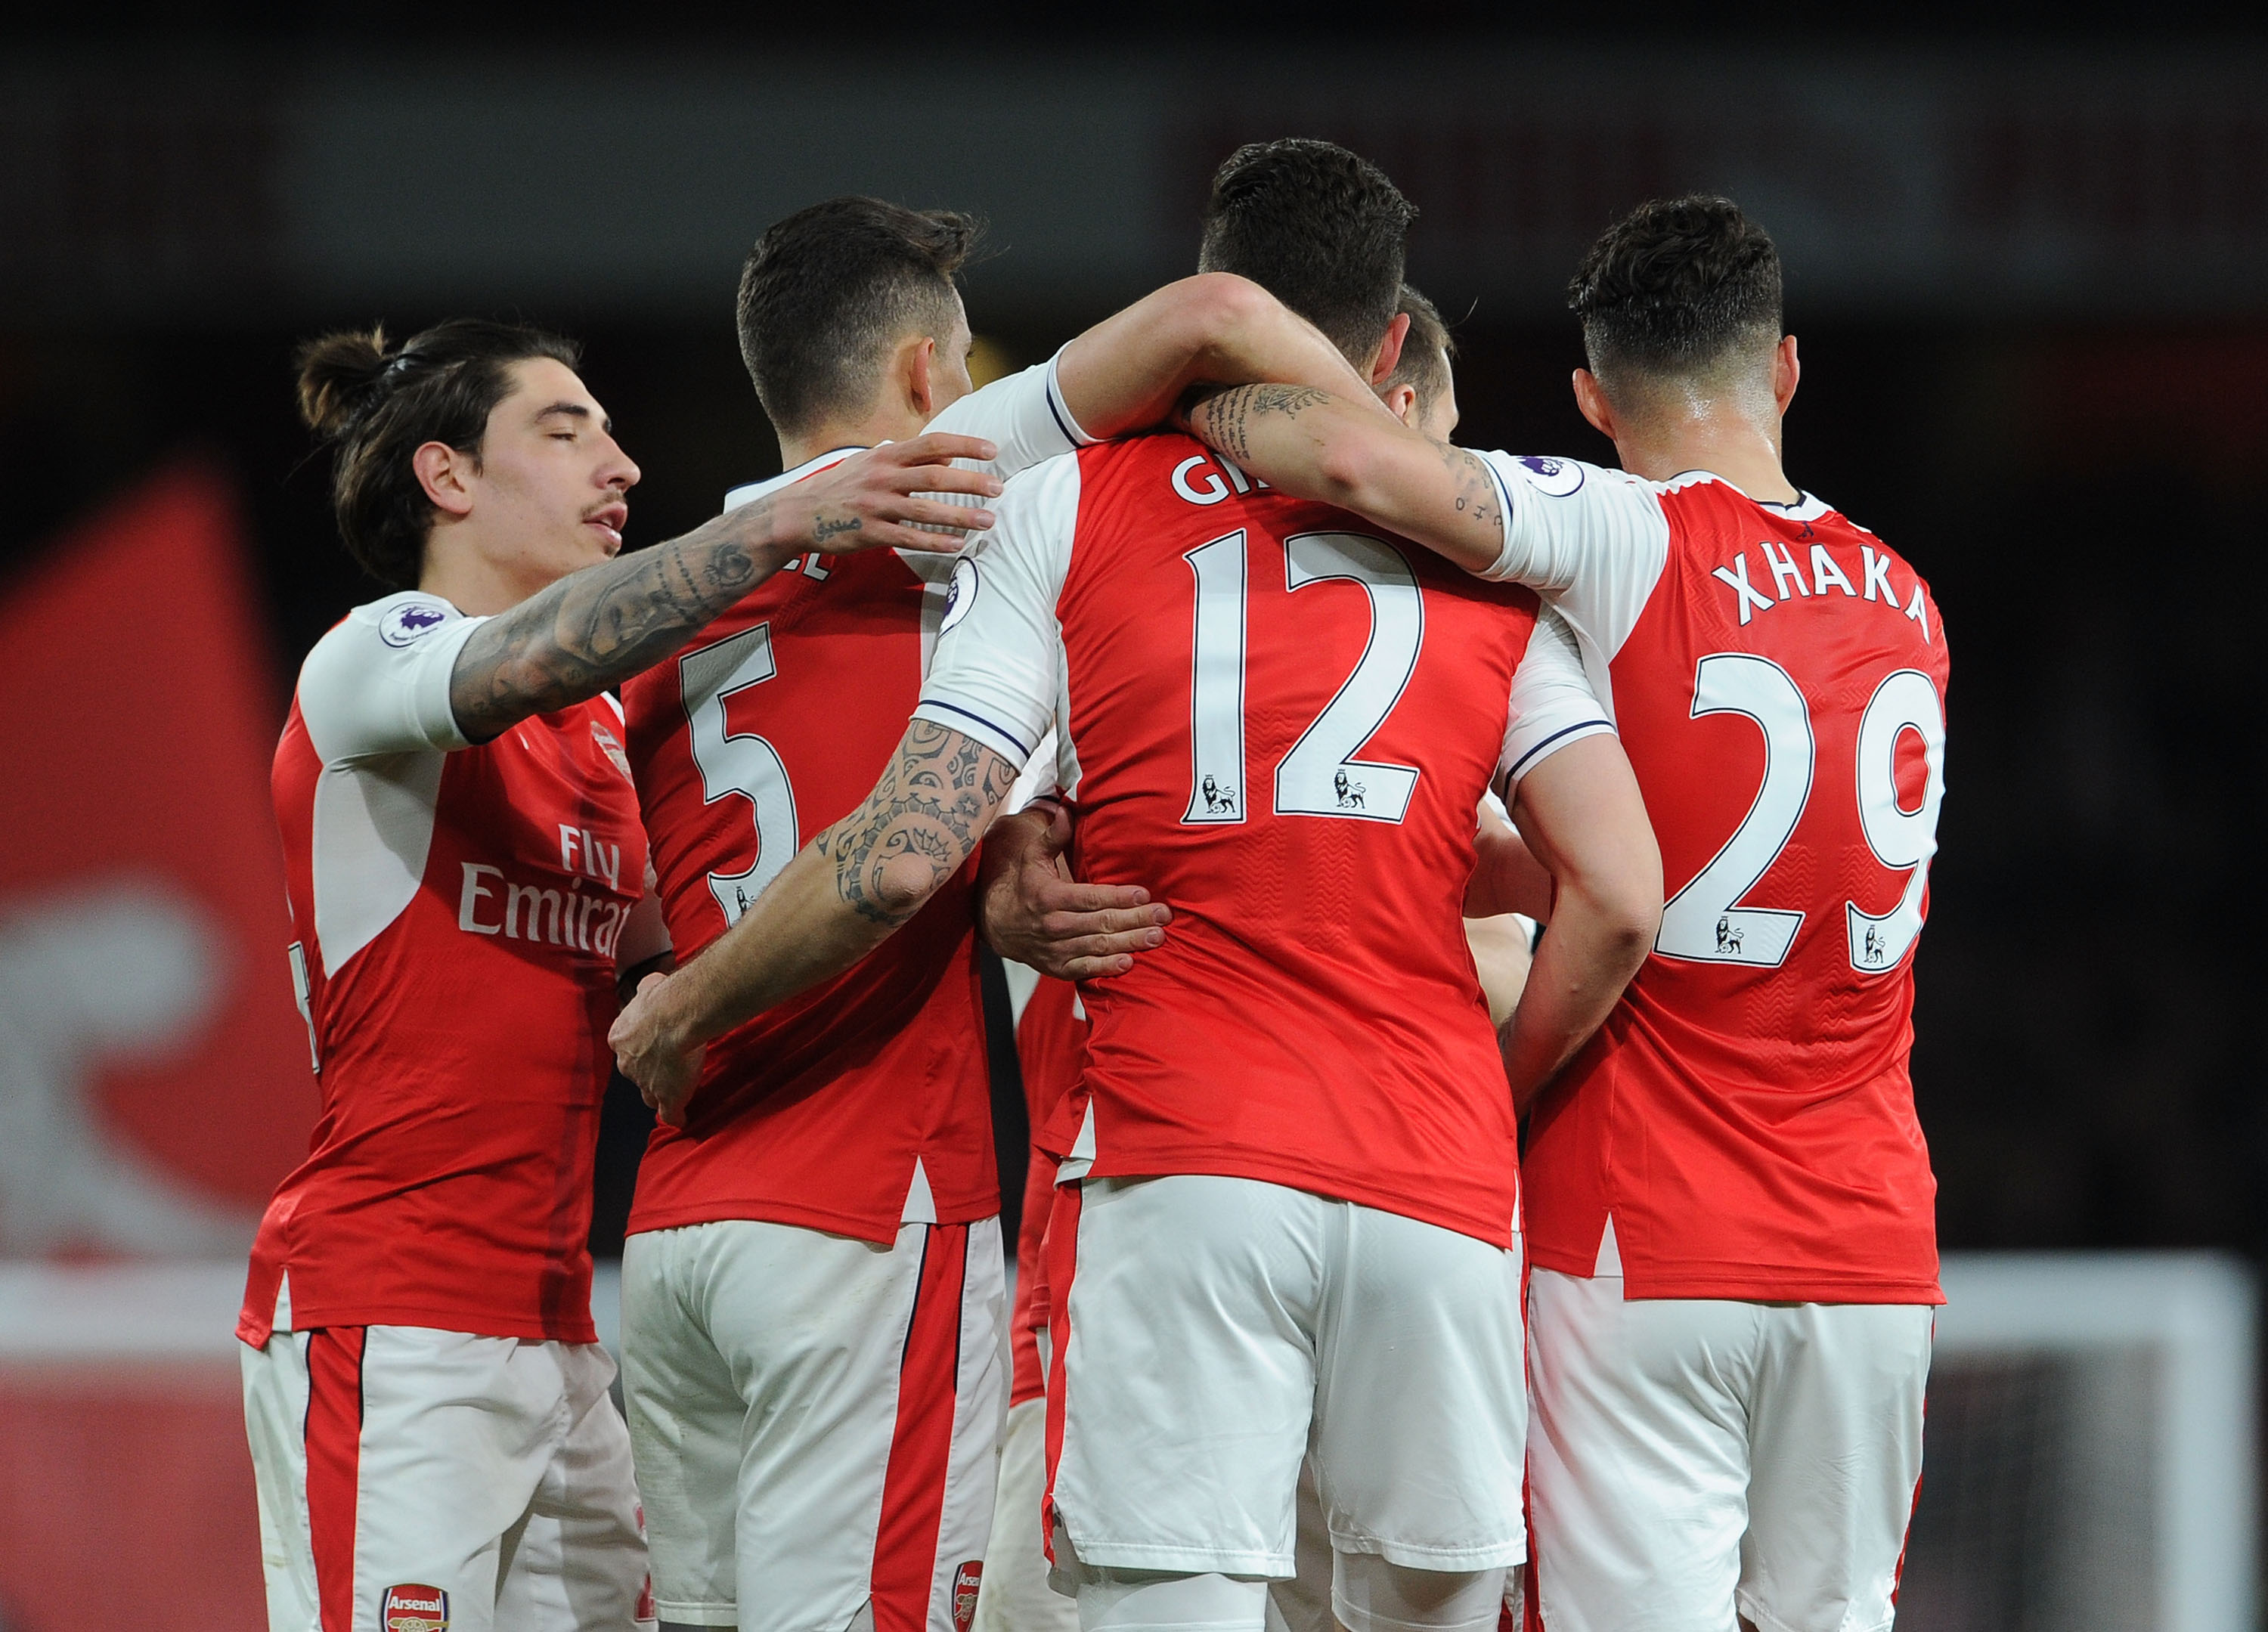 Arsenal become first Premier League team to score 100 goals after 3-0 win v West Ham